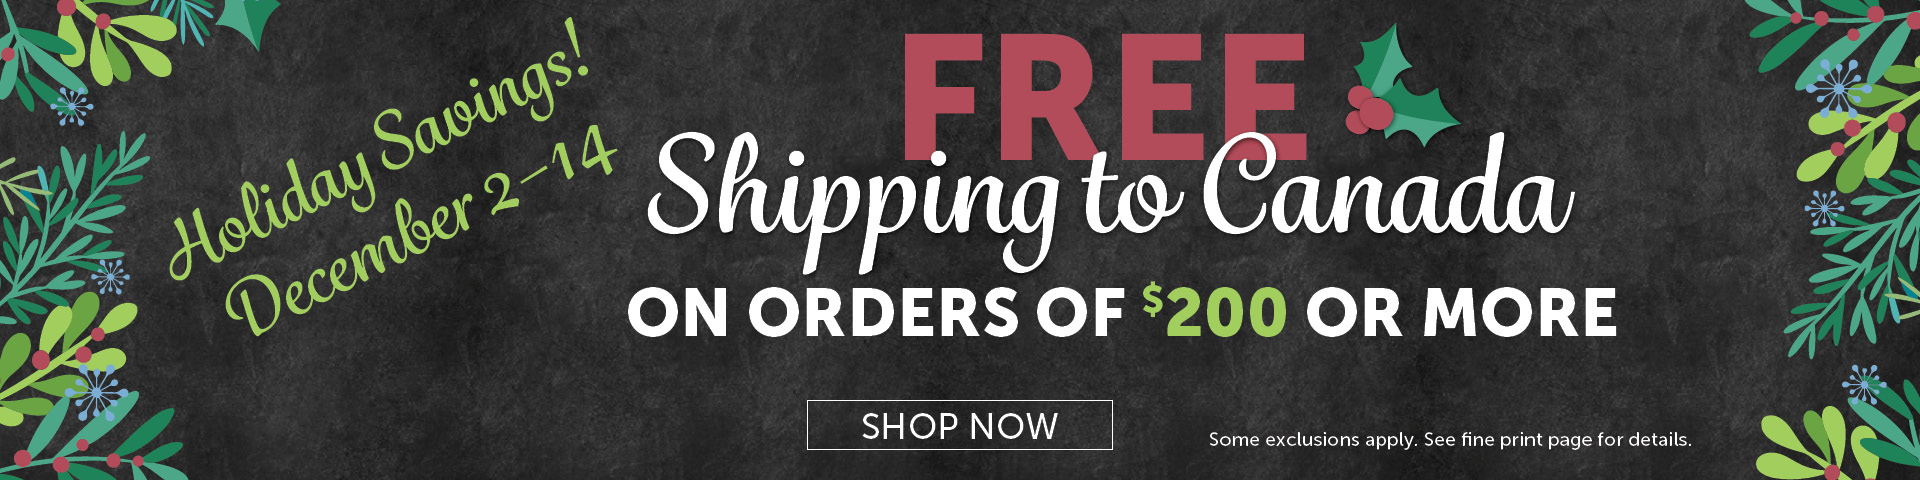 Free Shipping to Canada on Orders of $200 or More December 2-14